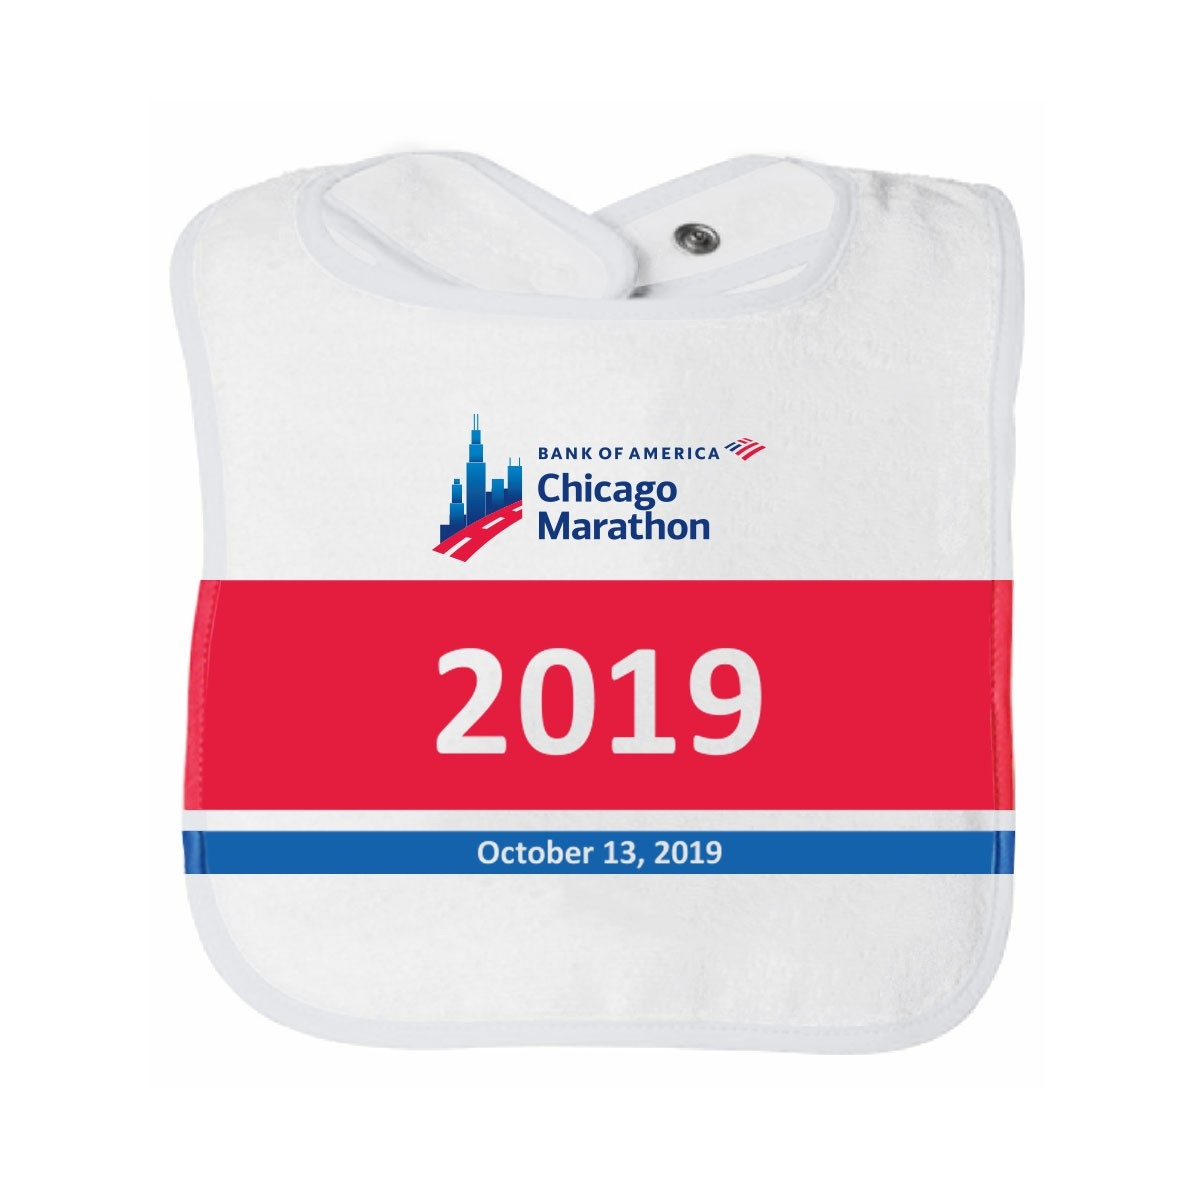 Pleasant Chicago Marathon Commemorative Merchandise Gmtry Best Dining Table And Chair Ideas Images Gmtryco